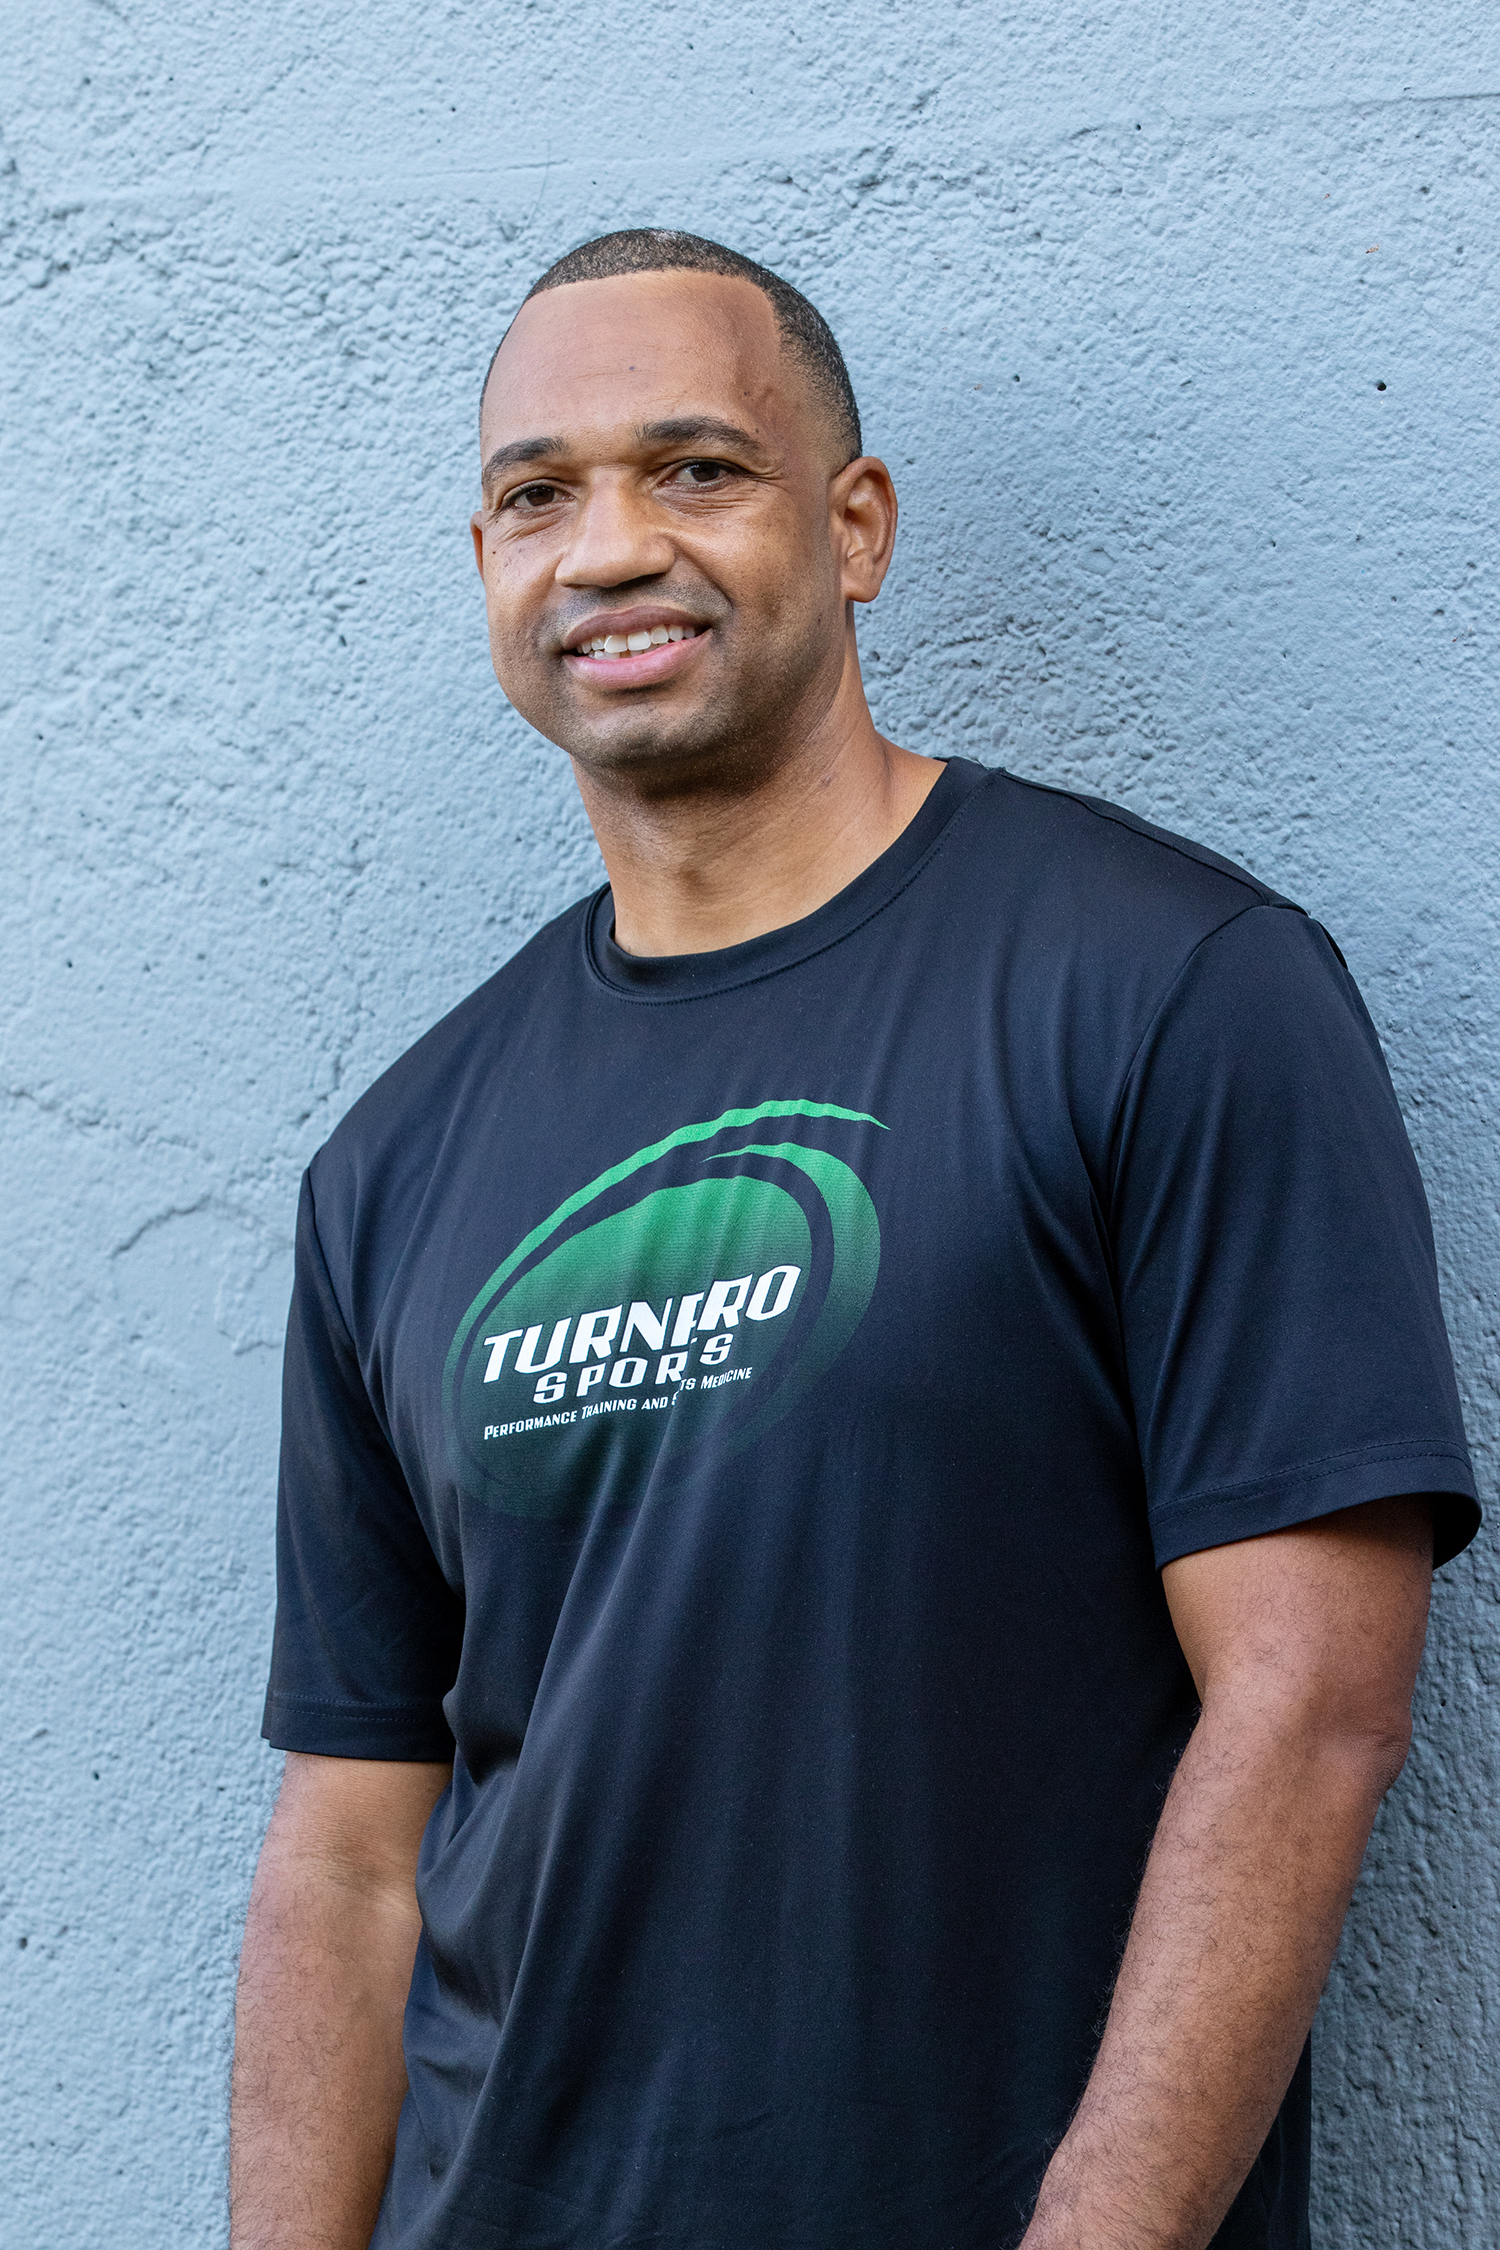 Markus Turner - Owner and Coach at TurnPro Sports